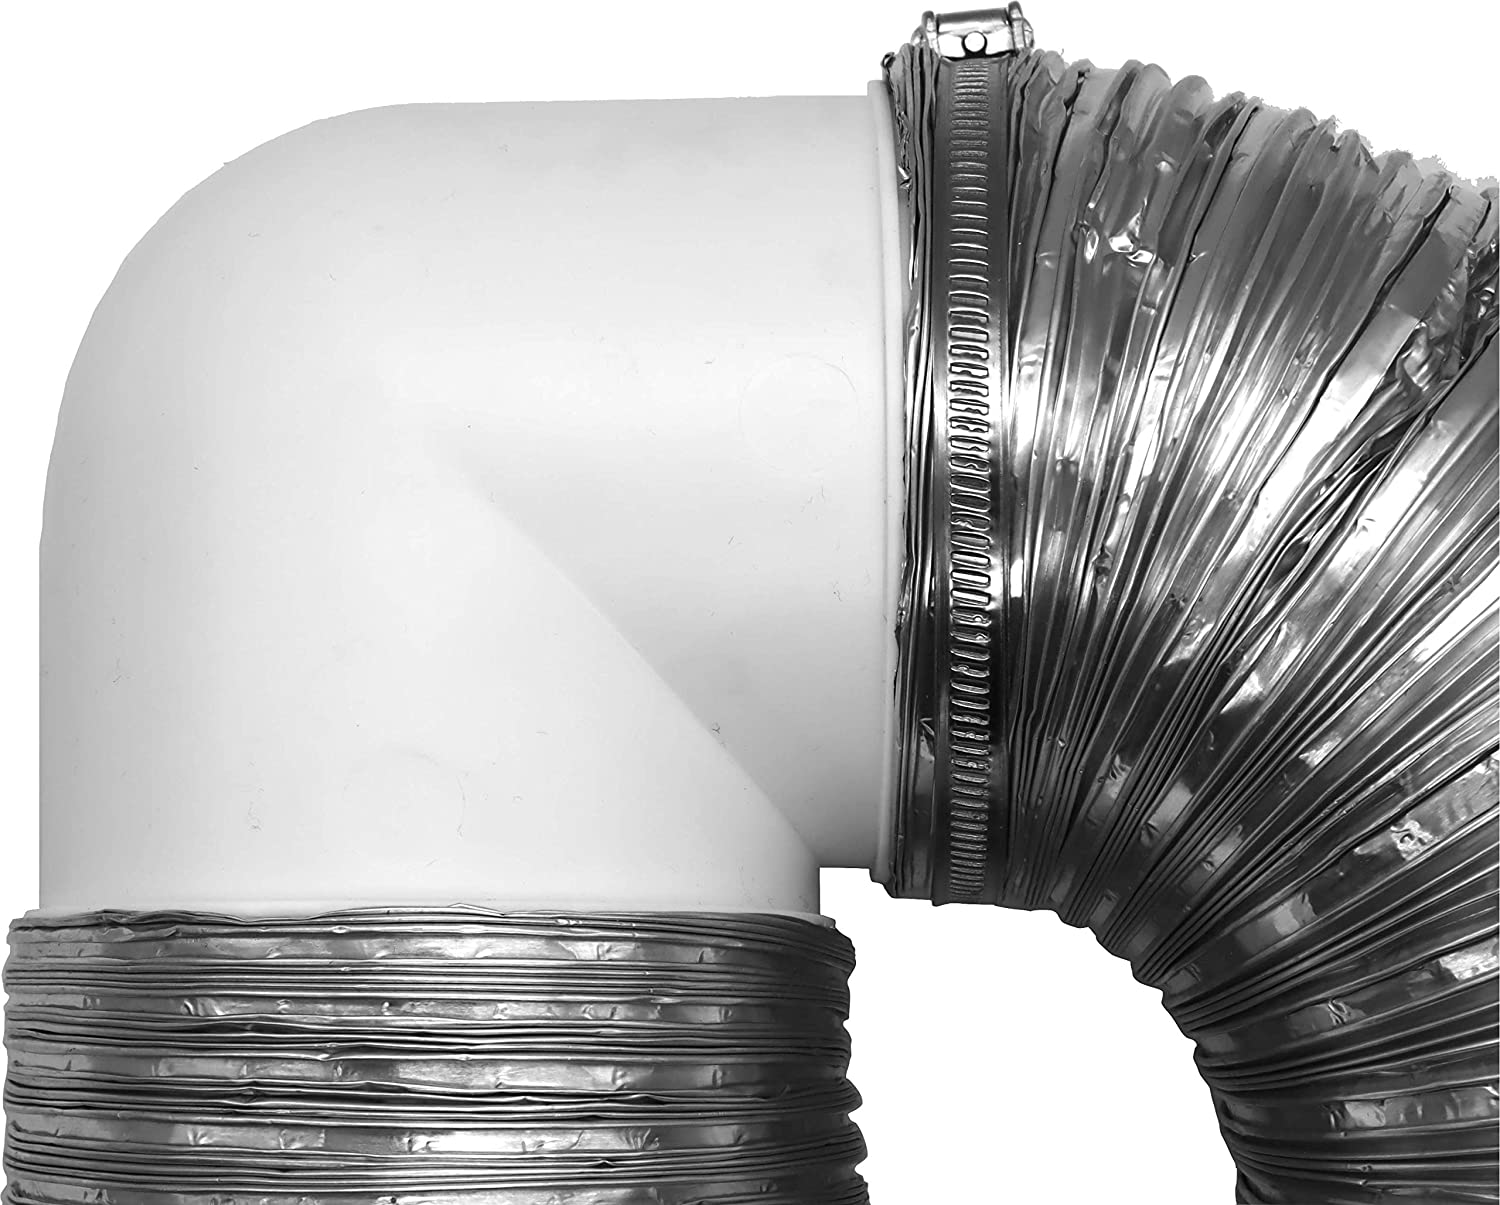 Vent Systems 4 inch Elbow 90 Degree Duct Pipe Connector Flexible Round Tube Ventilation Hose ABS Plastic 100 mm